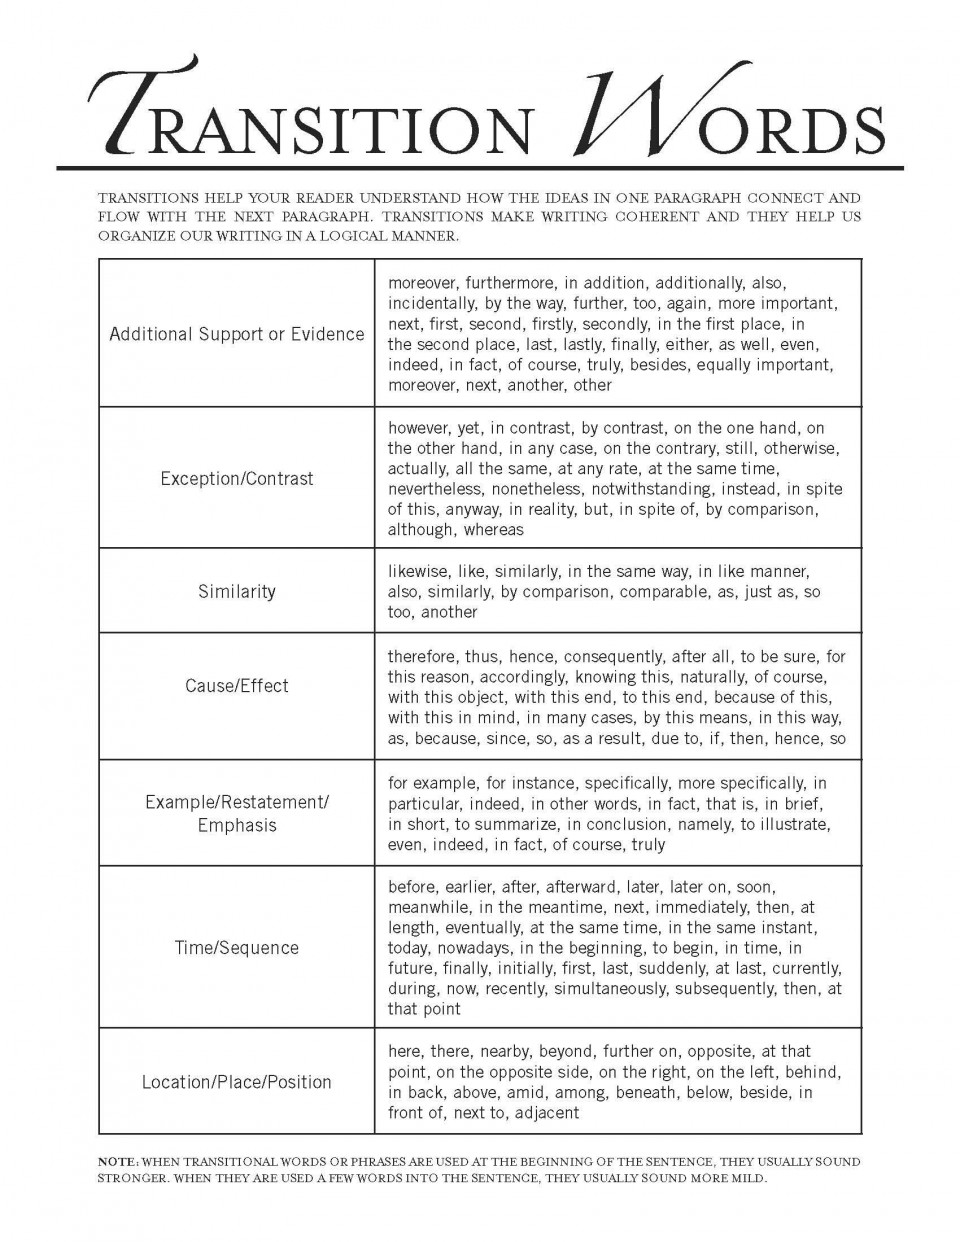 003 Essay Transitions Archaicawful Transition Sentences Between Paragraphs Words List 960